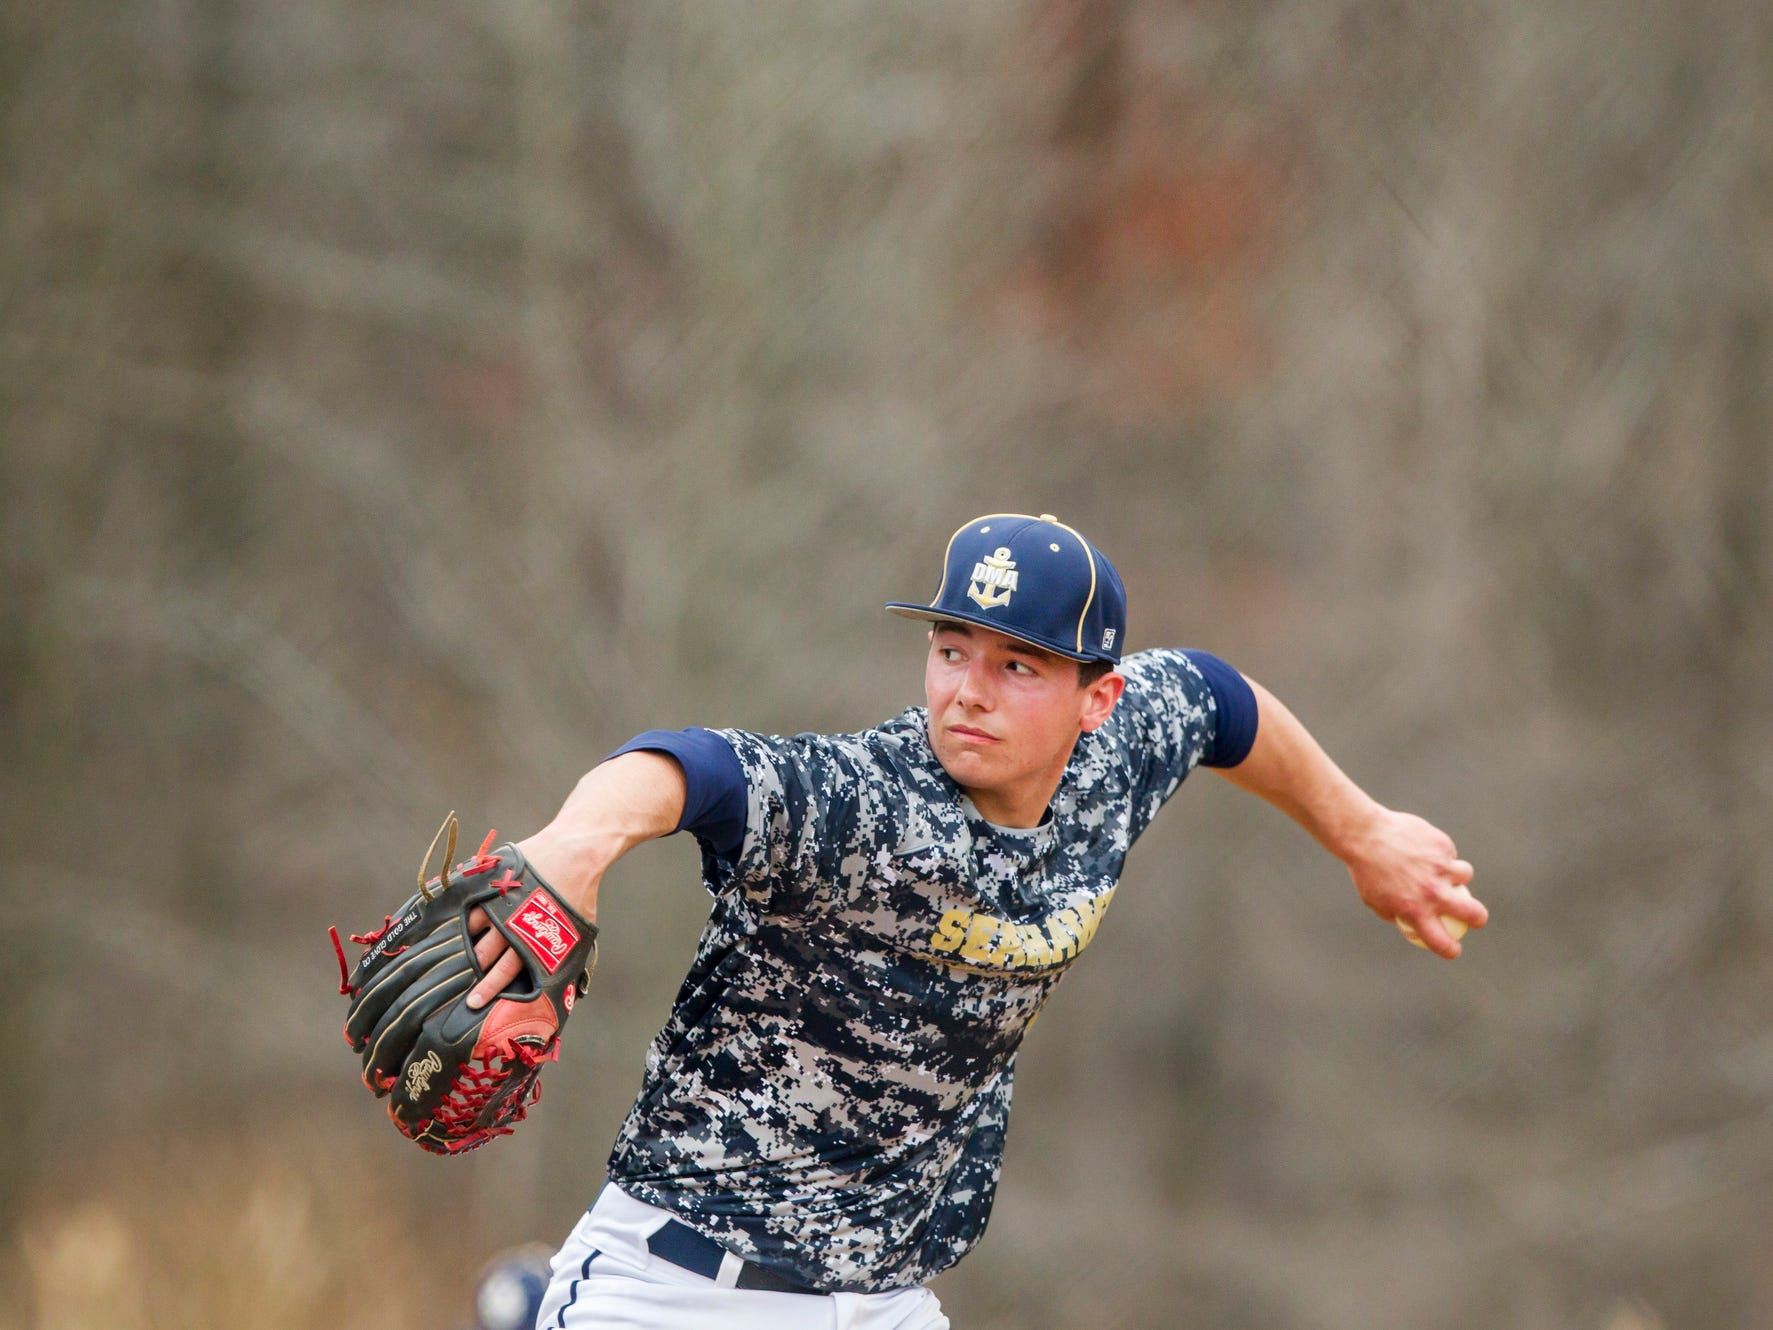 Delaware Military Academy pitcher Vincent Ruggiero delivers a pitch during a game at Newark National field on Tuesday afternoon.